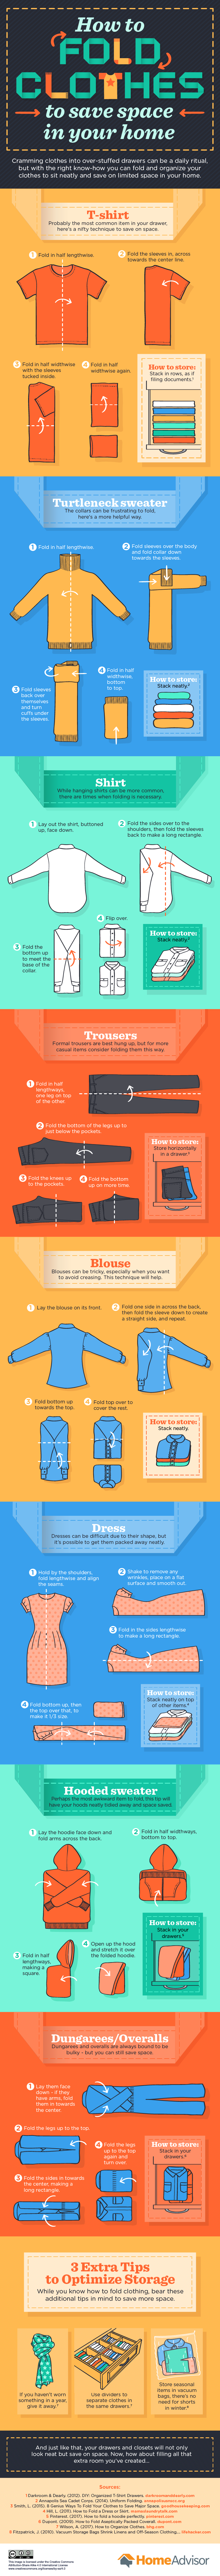 How to Fold Clothes to Save Space